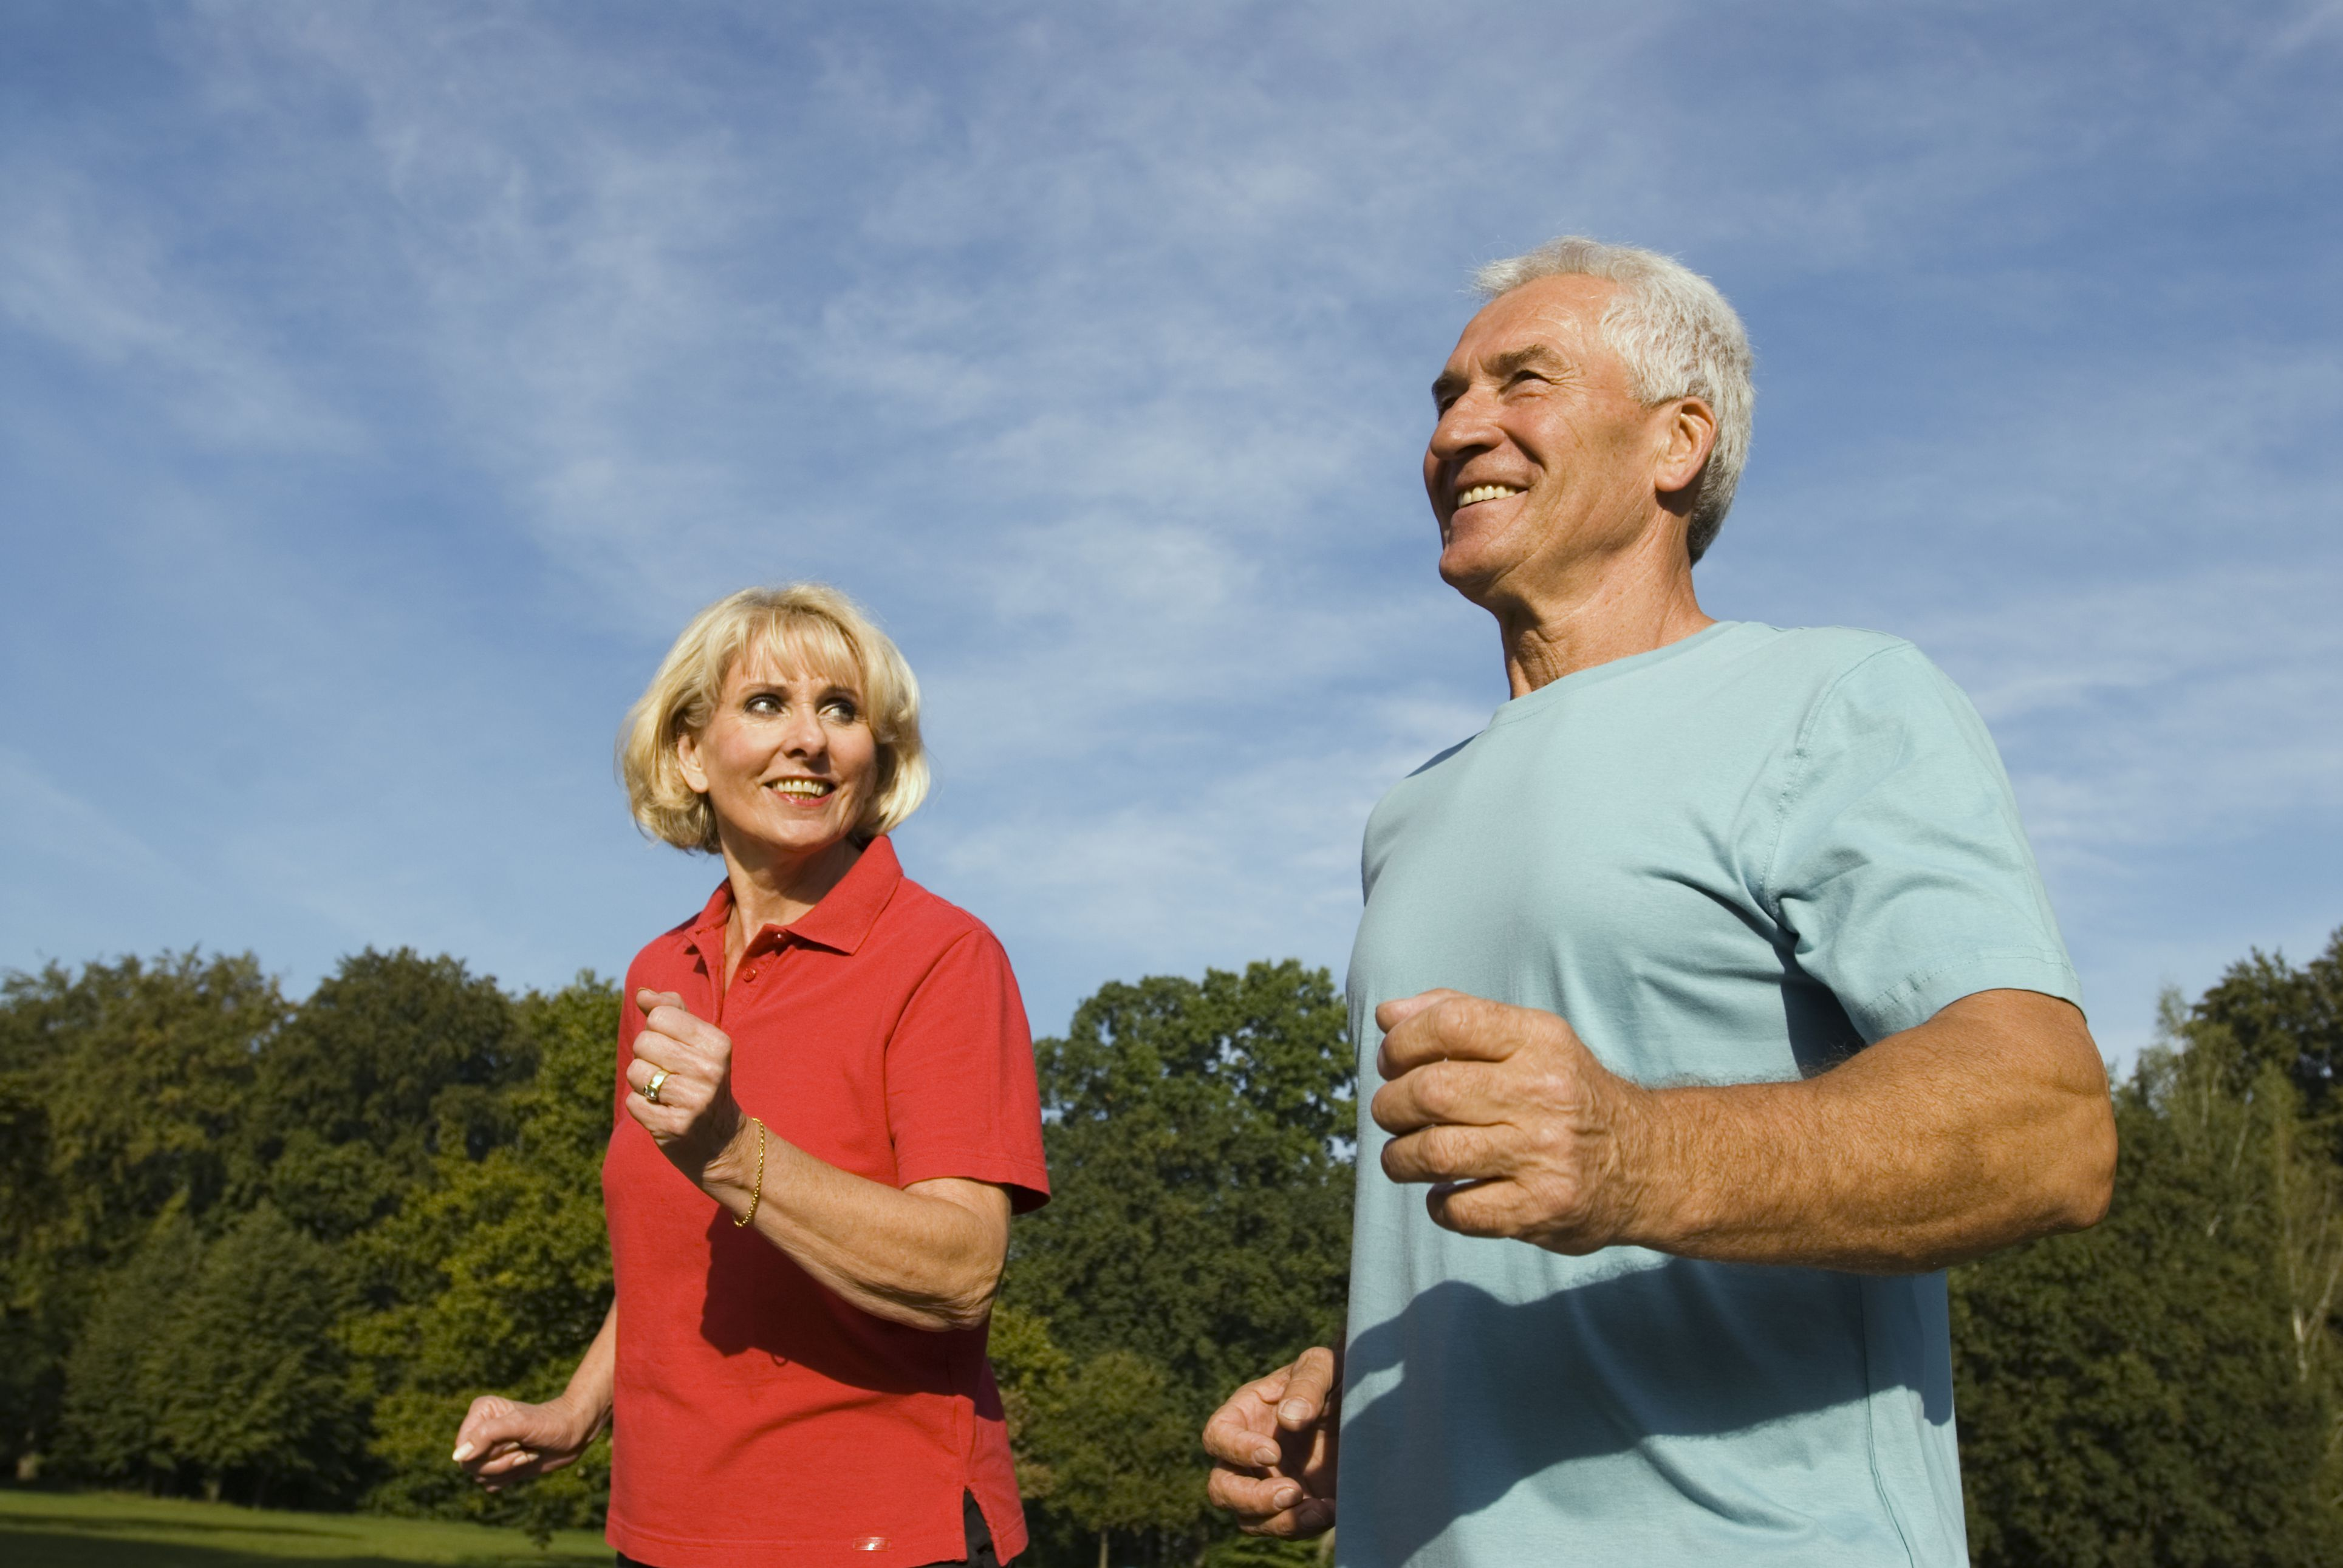 benefits od walking Get the facts on the health benefits of walking, techniques and tips, statistics, weight loss and calories burned, running vs walking, and the mechanics of walking.